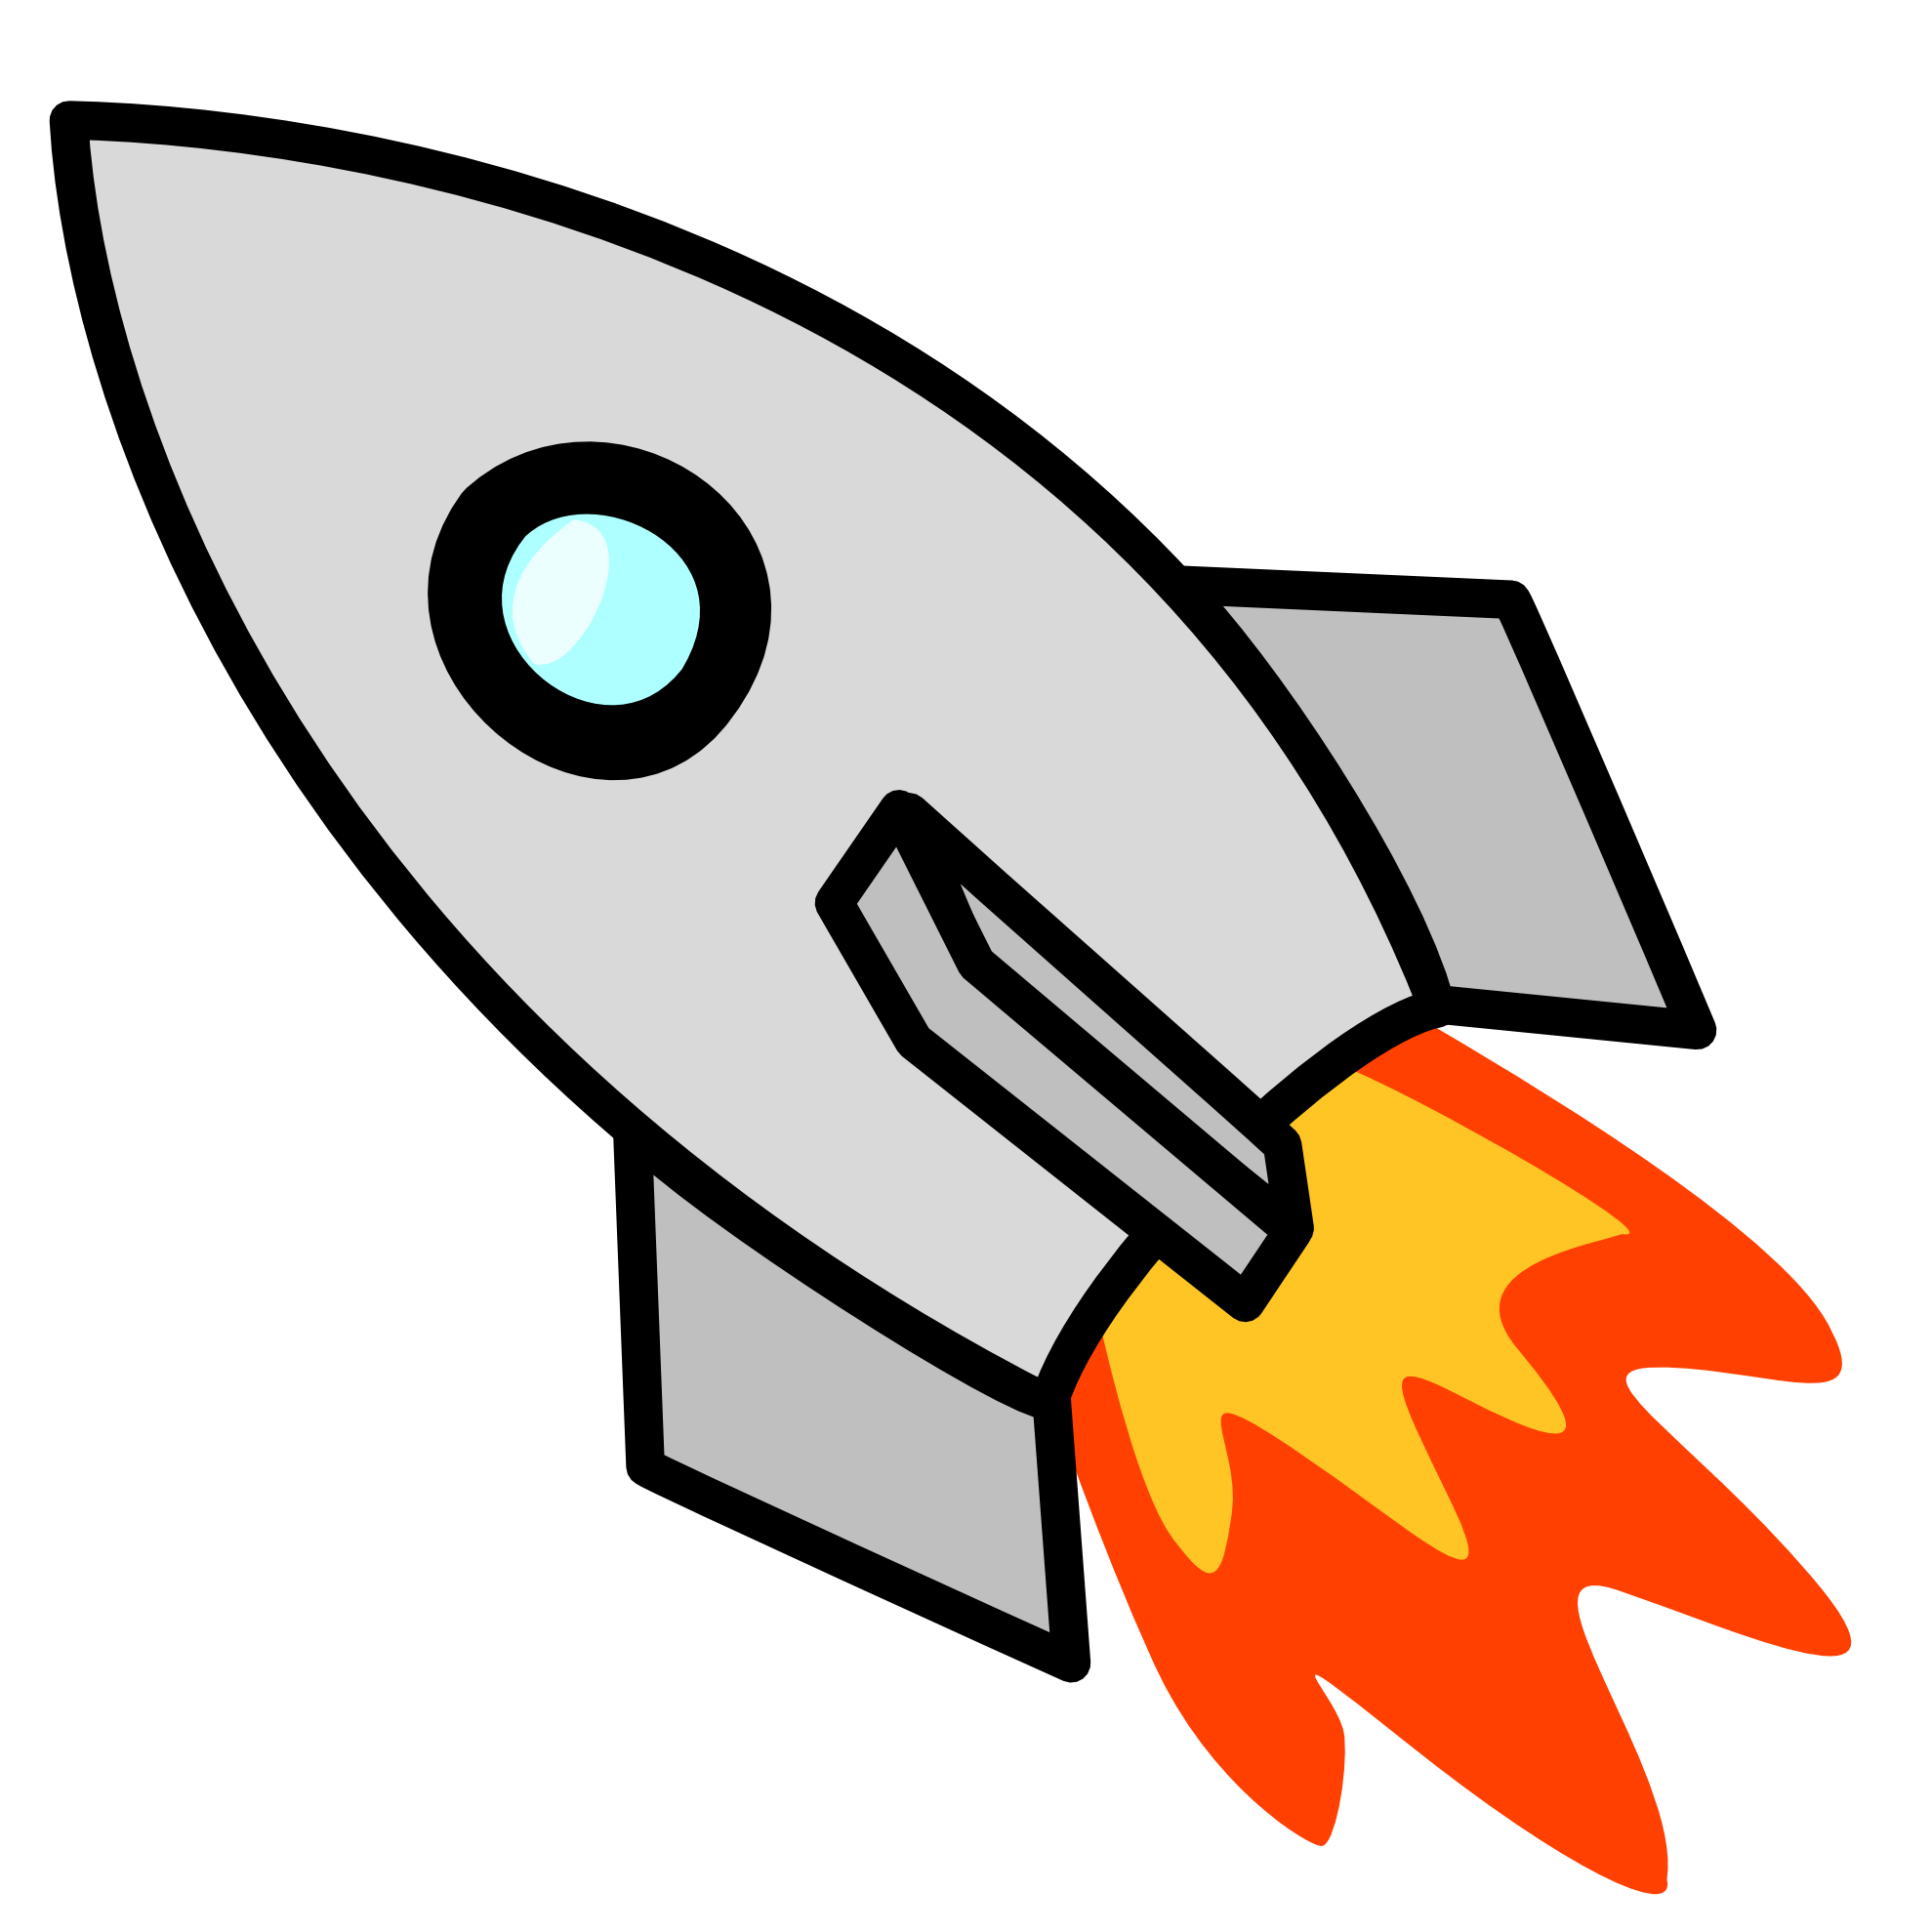 Spaceship clipart images clipart